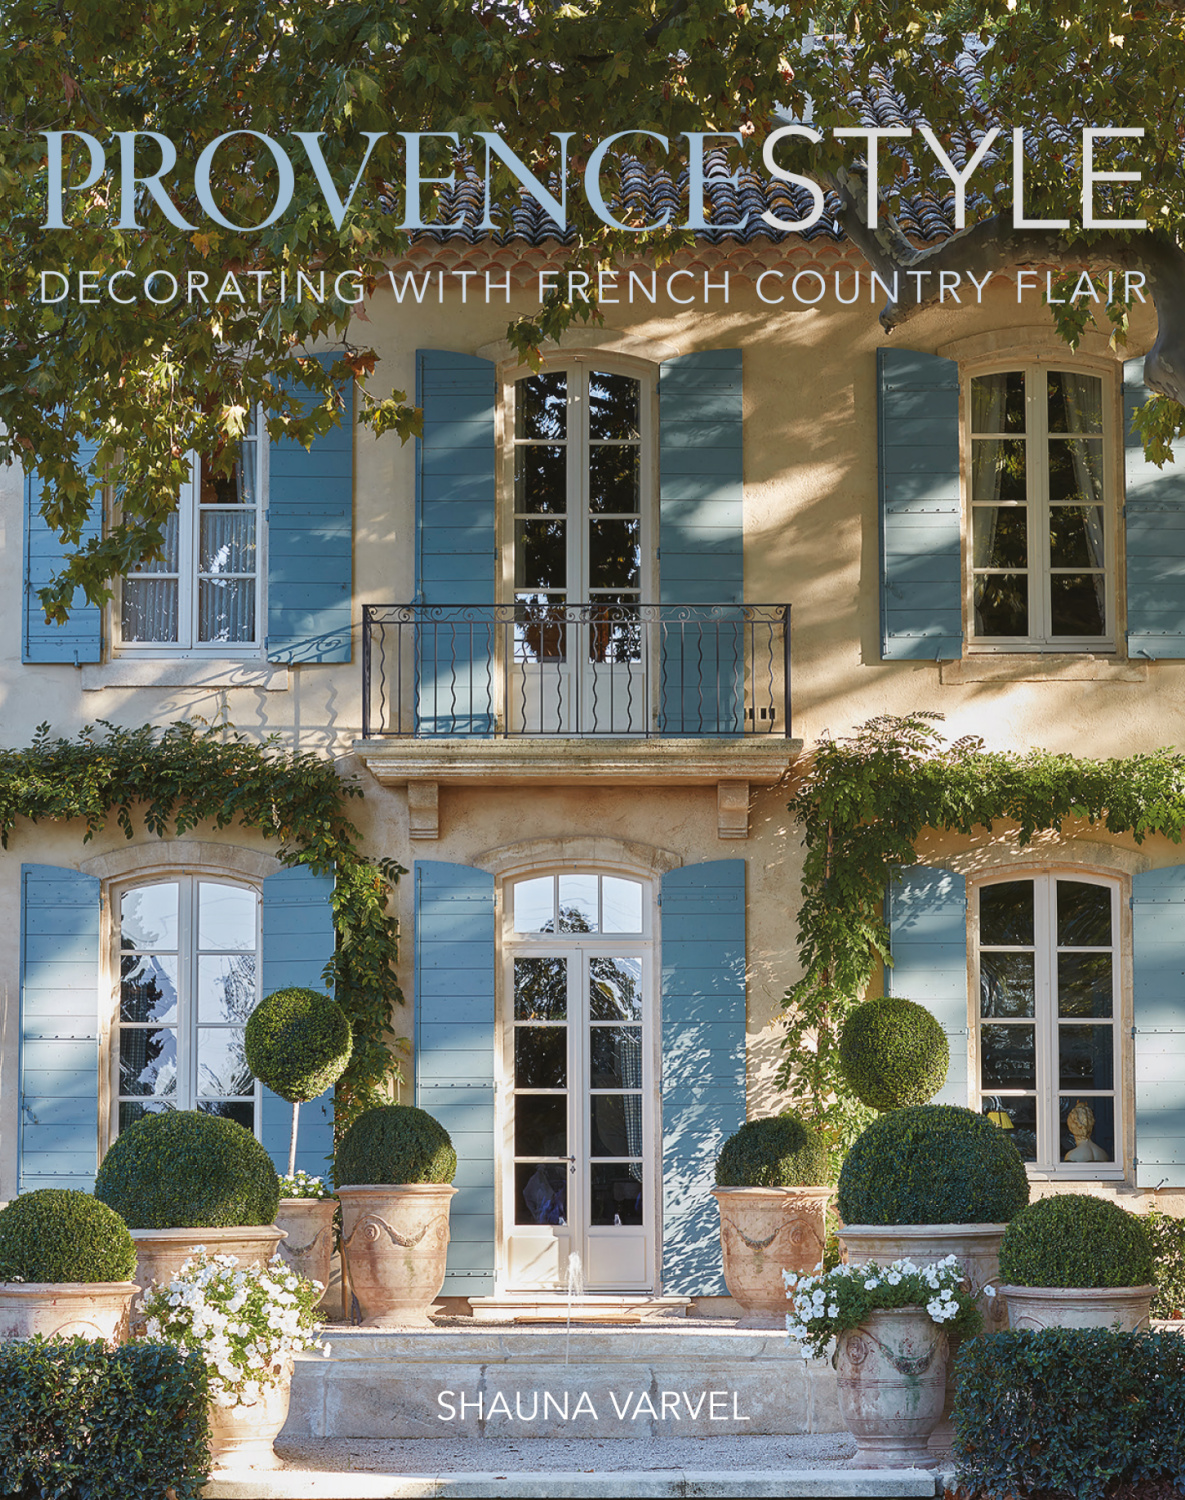 PROVENCE STYLE by Shauna Varvel (Vendome, 2021) with Alexandra Black and Photography by Luke White. #provence #interiordesign #lemasdepoirers